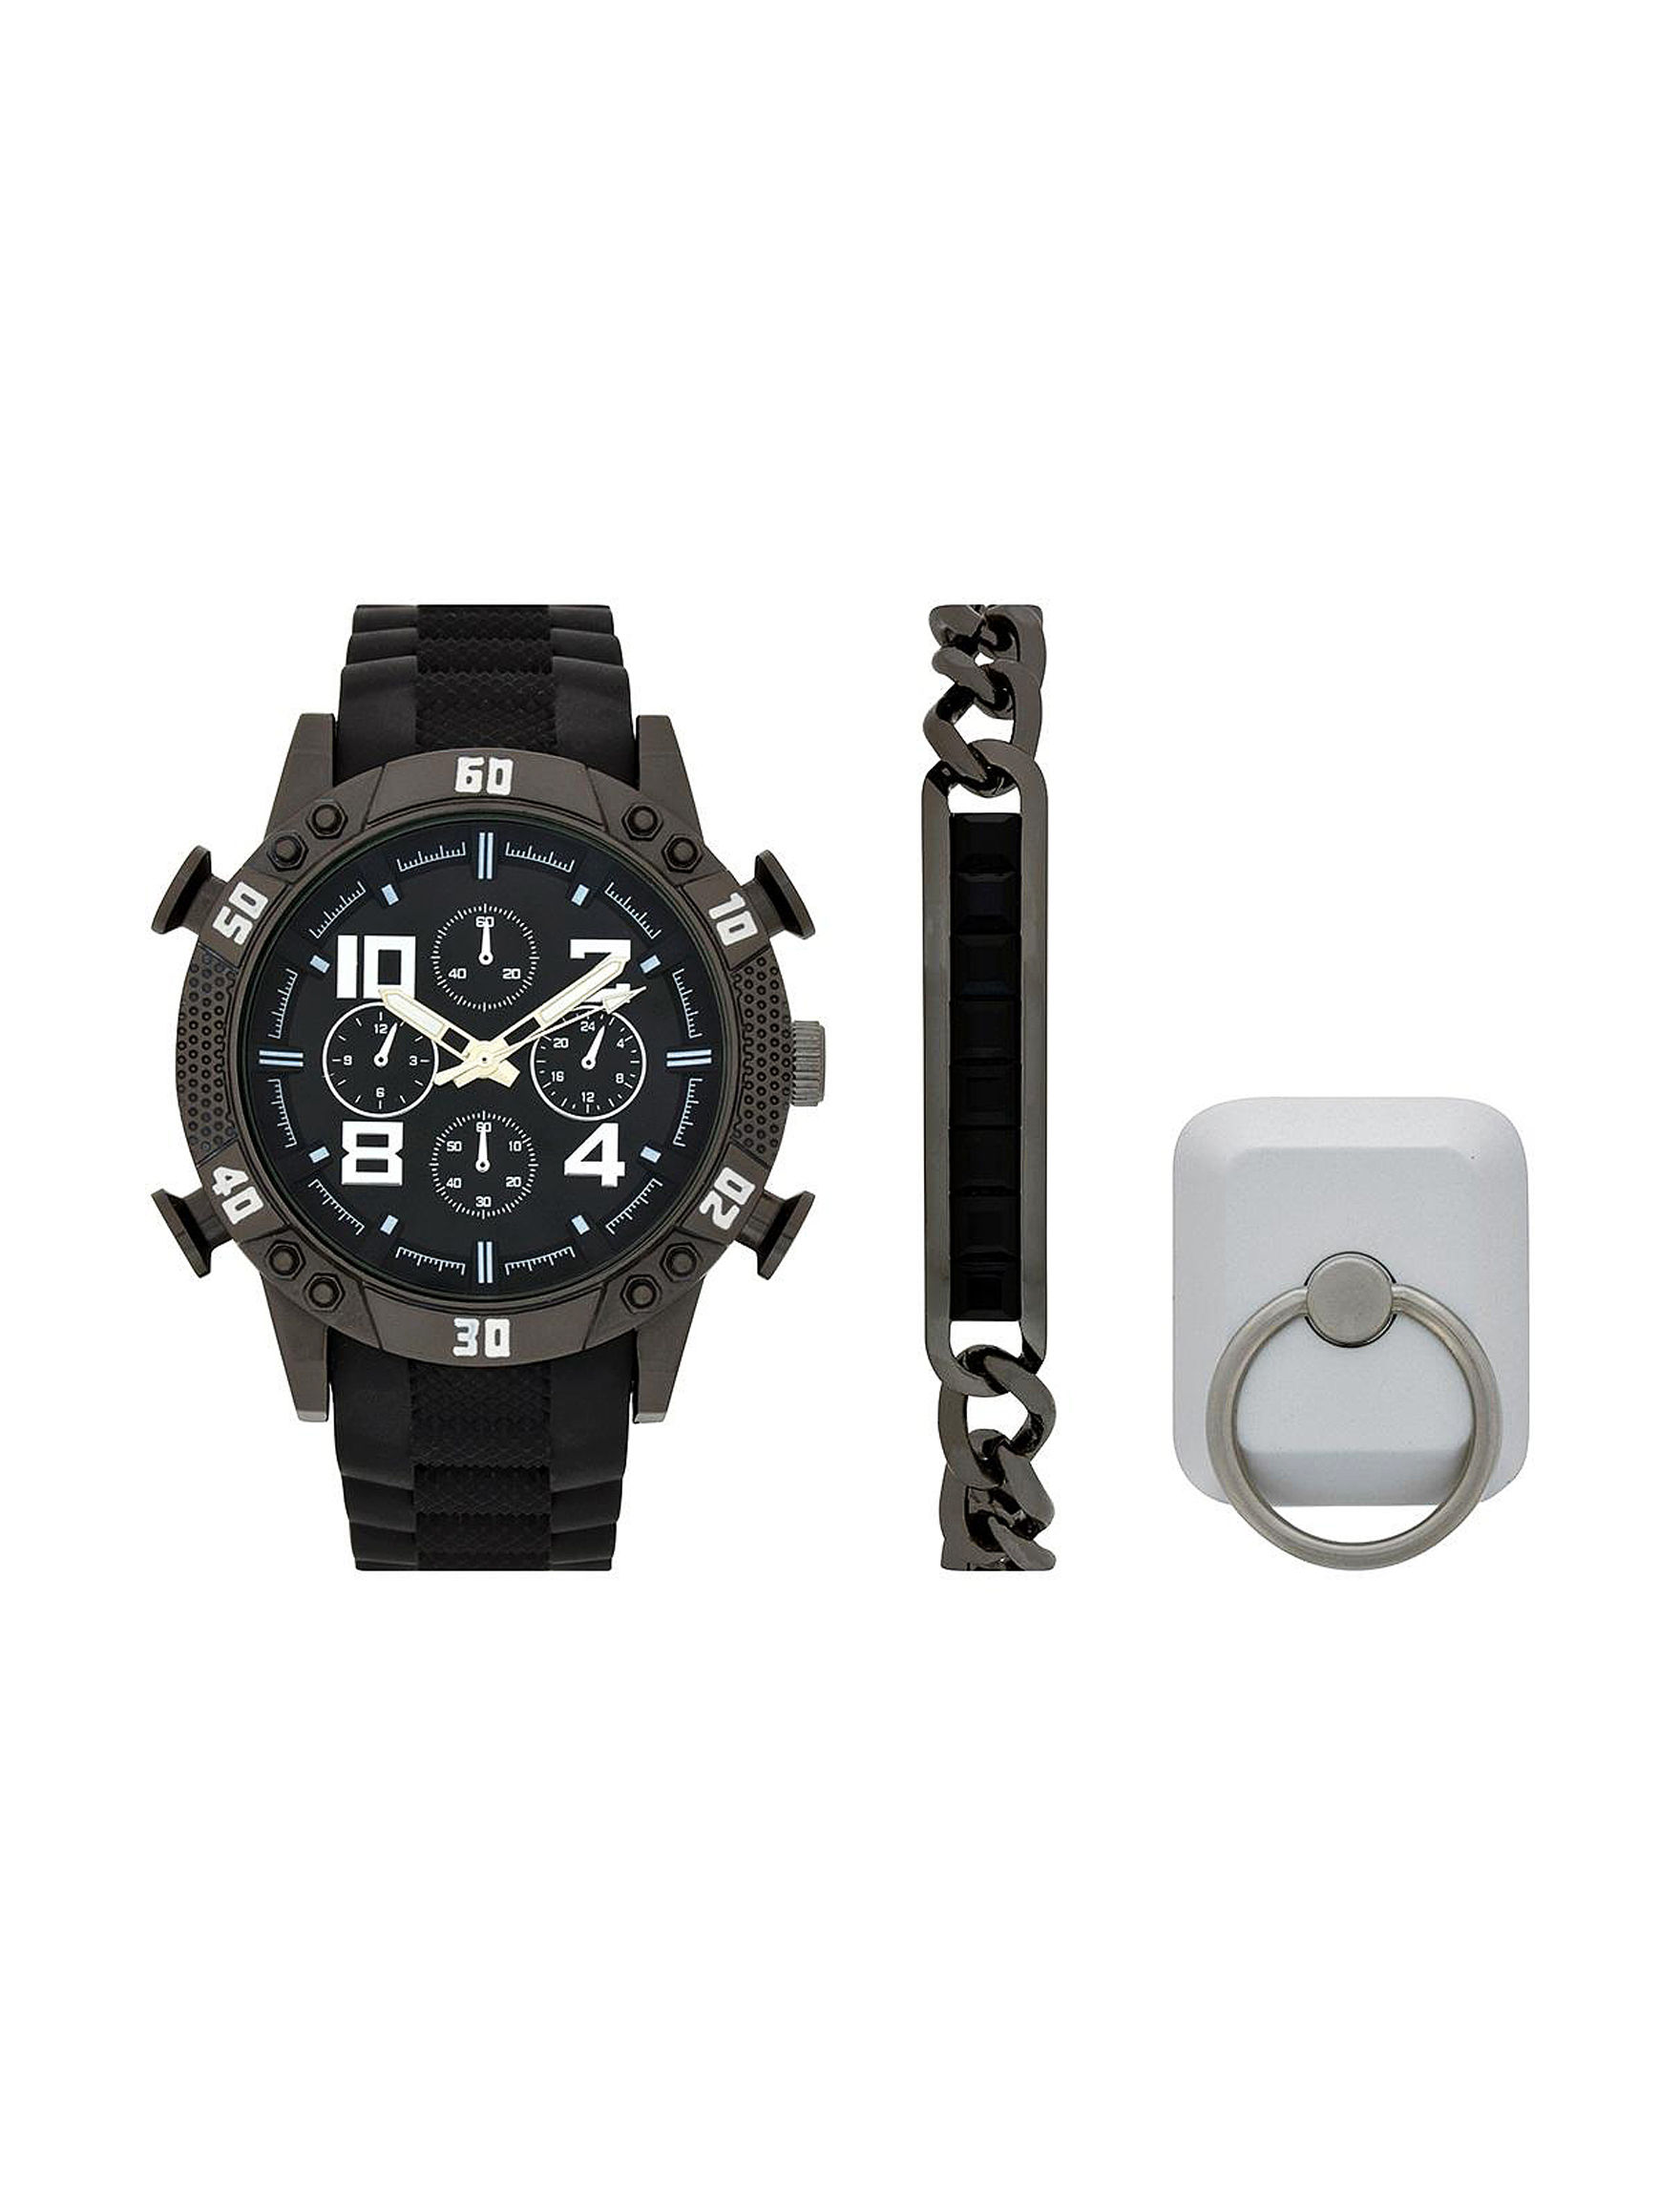 Accutime Gunmetal Fashion Watches